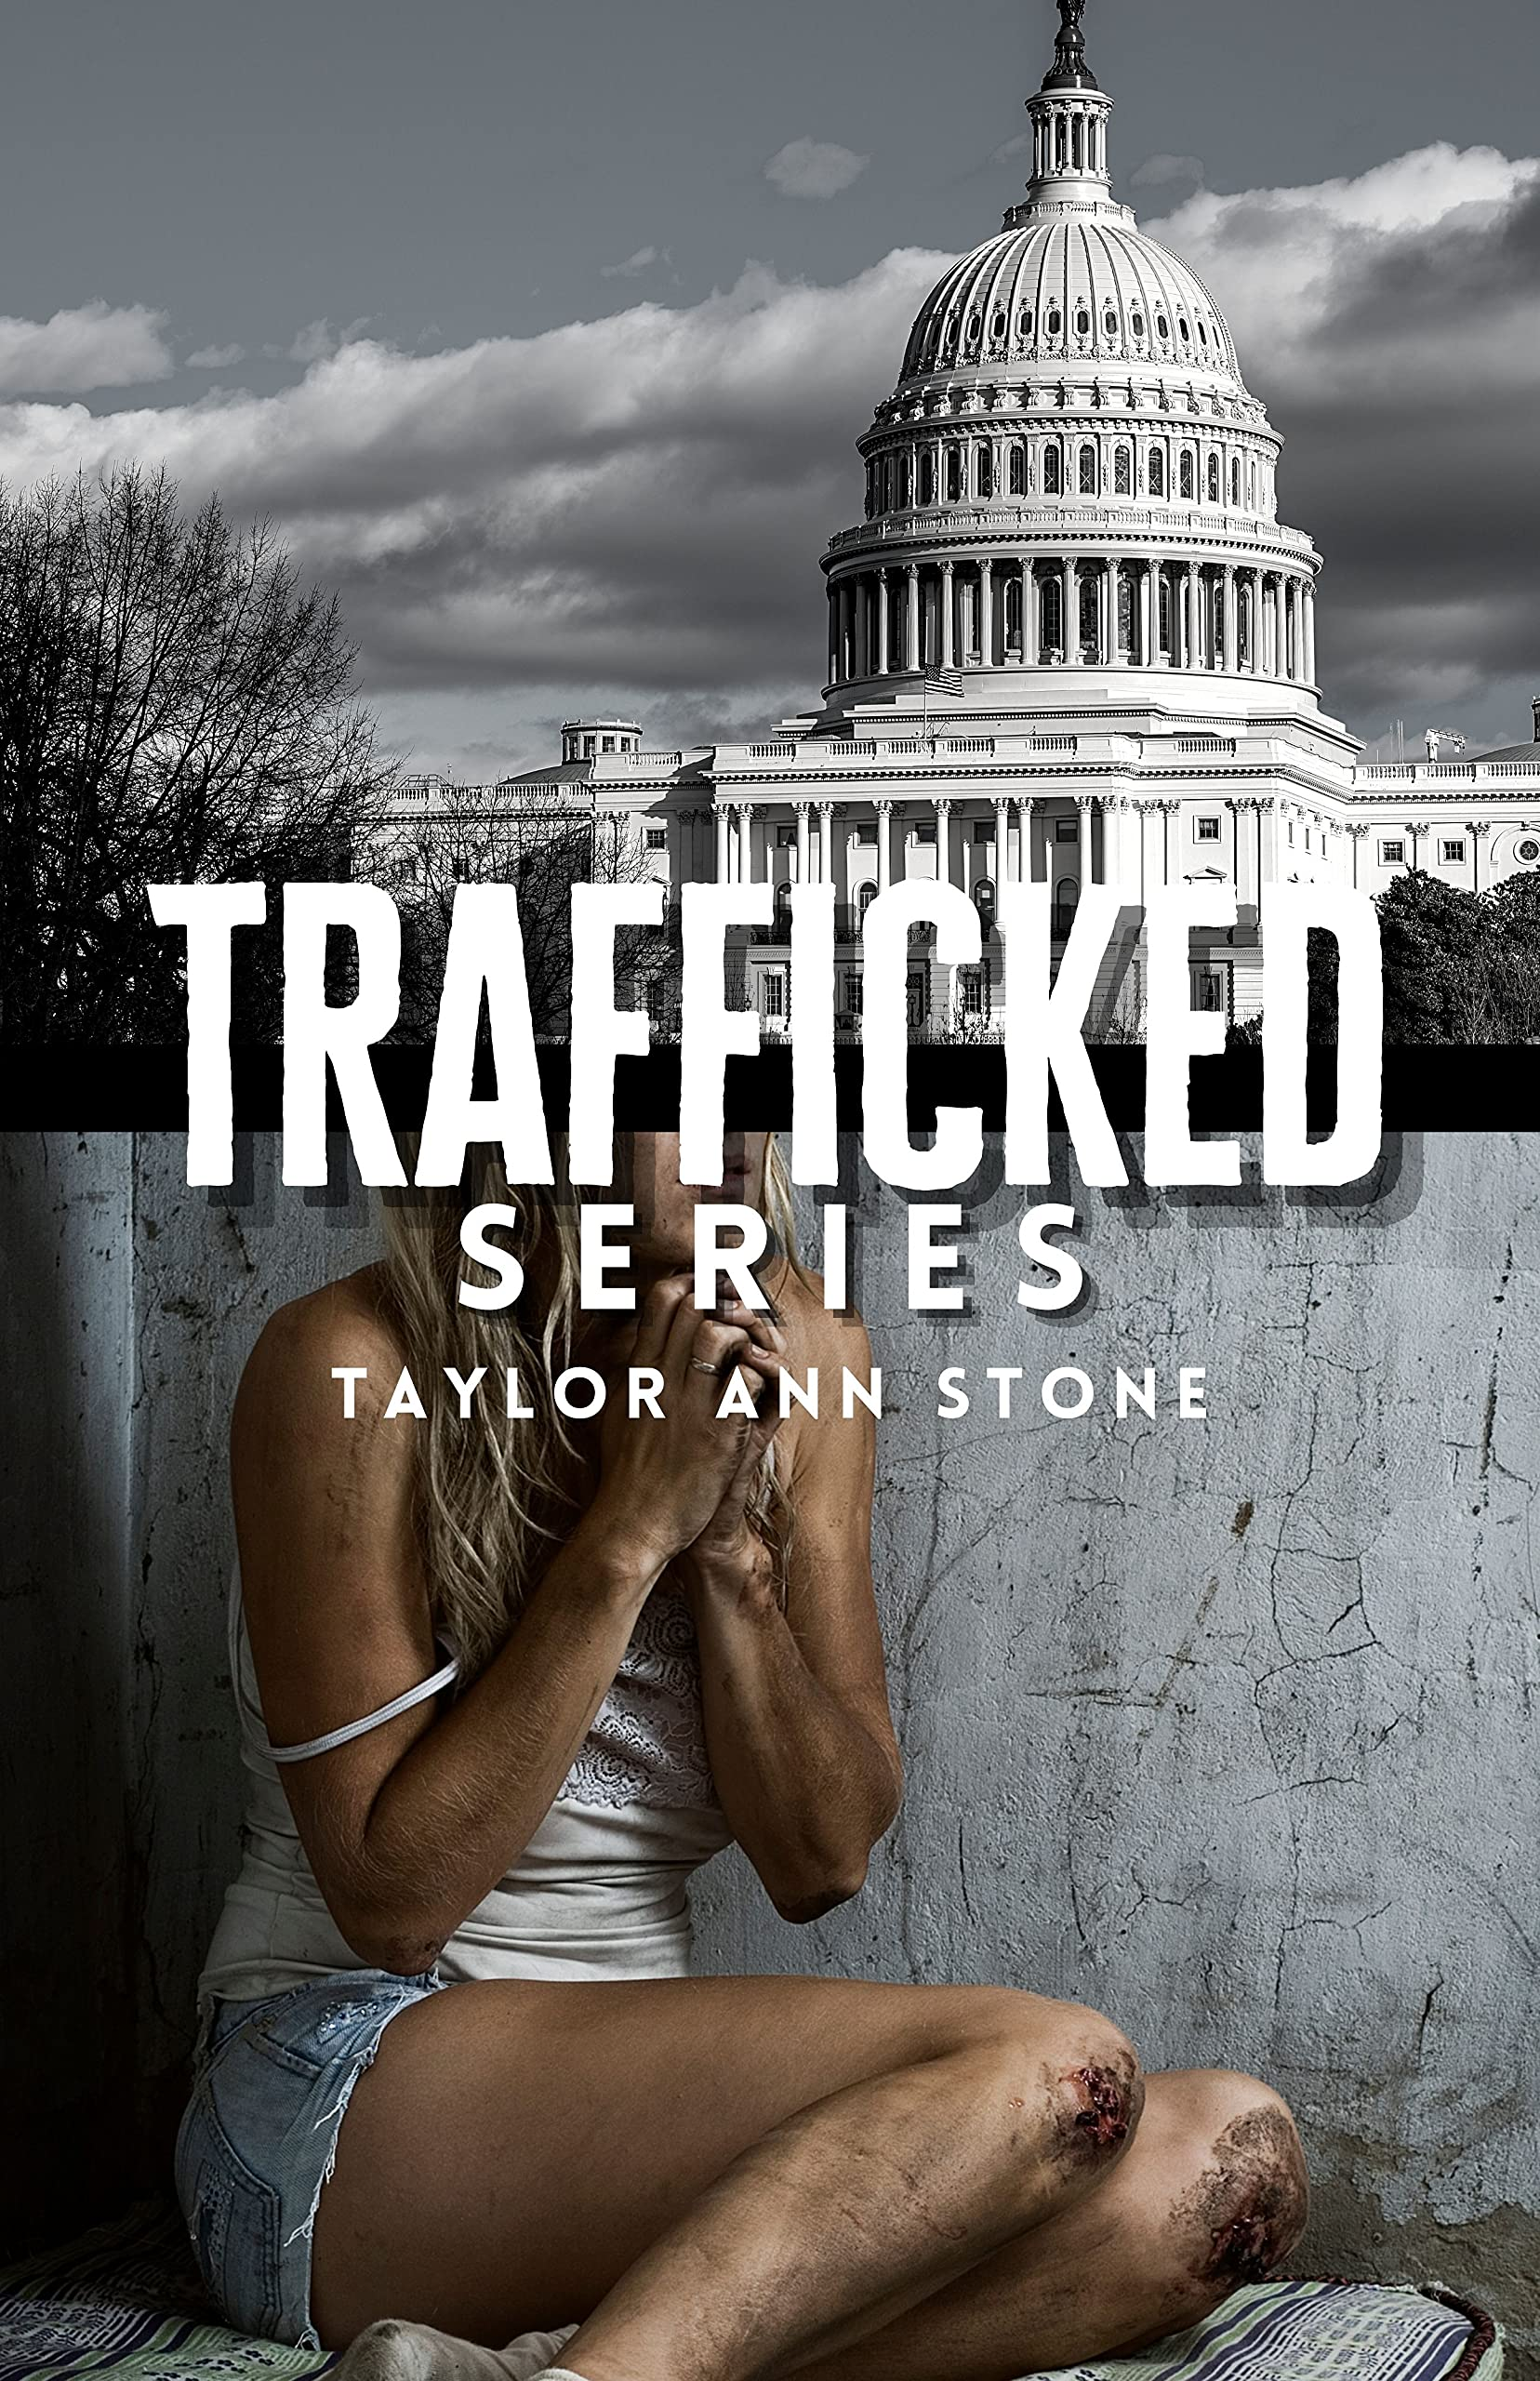 Trafficked Series: Marlene's Story of Survival and Justice Bundle, A Thrilling Human Trafficking Suspense Novel